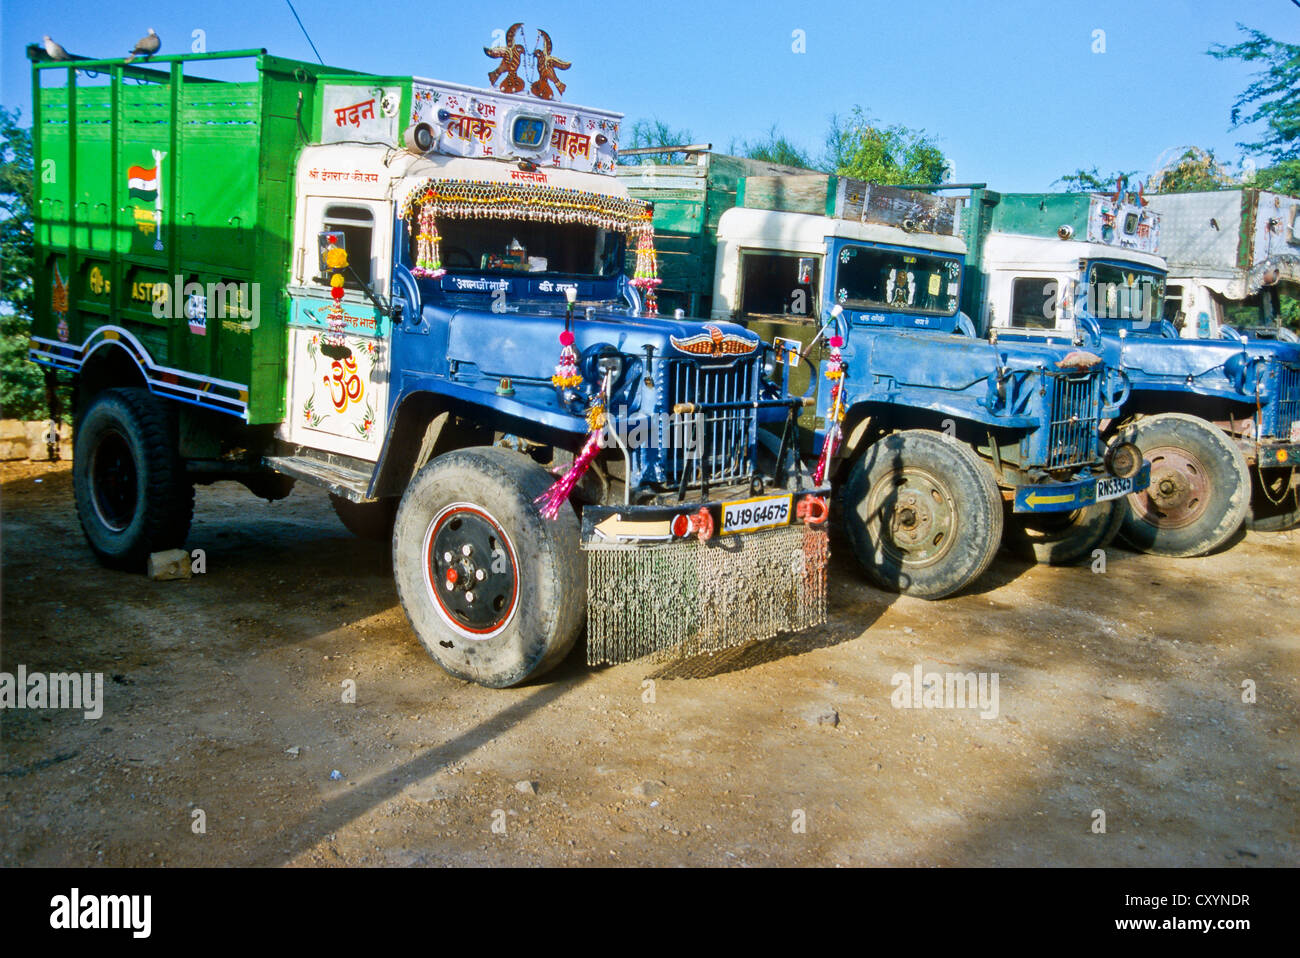 Old trucks used for transportation in rural areas, Bhuj, India, Asia ...